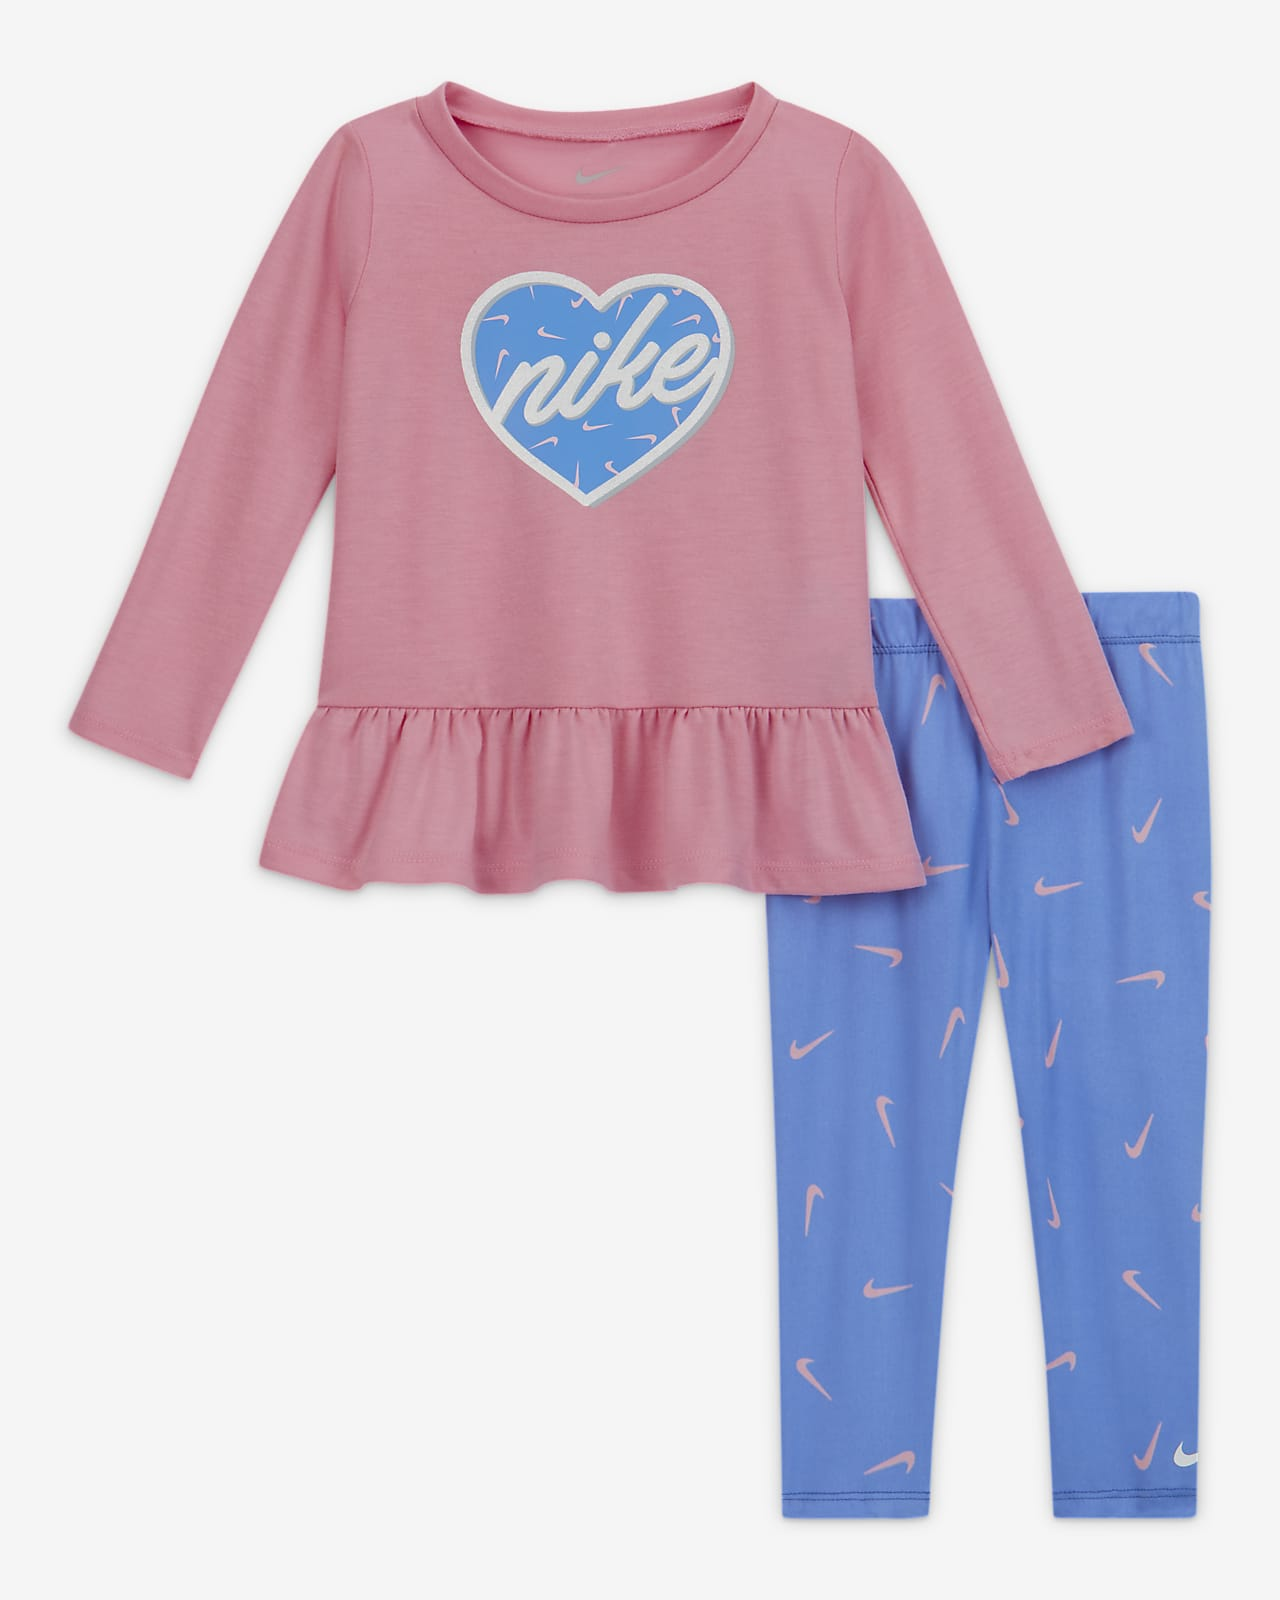 Nike Baby (12-24M) Top and Leggings Set